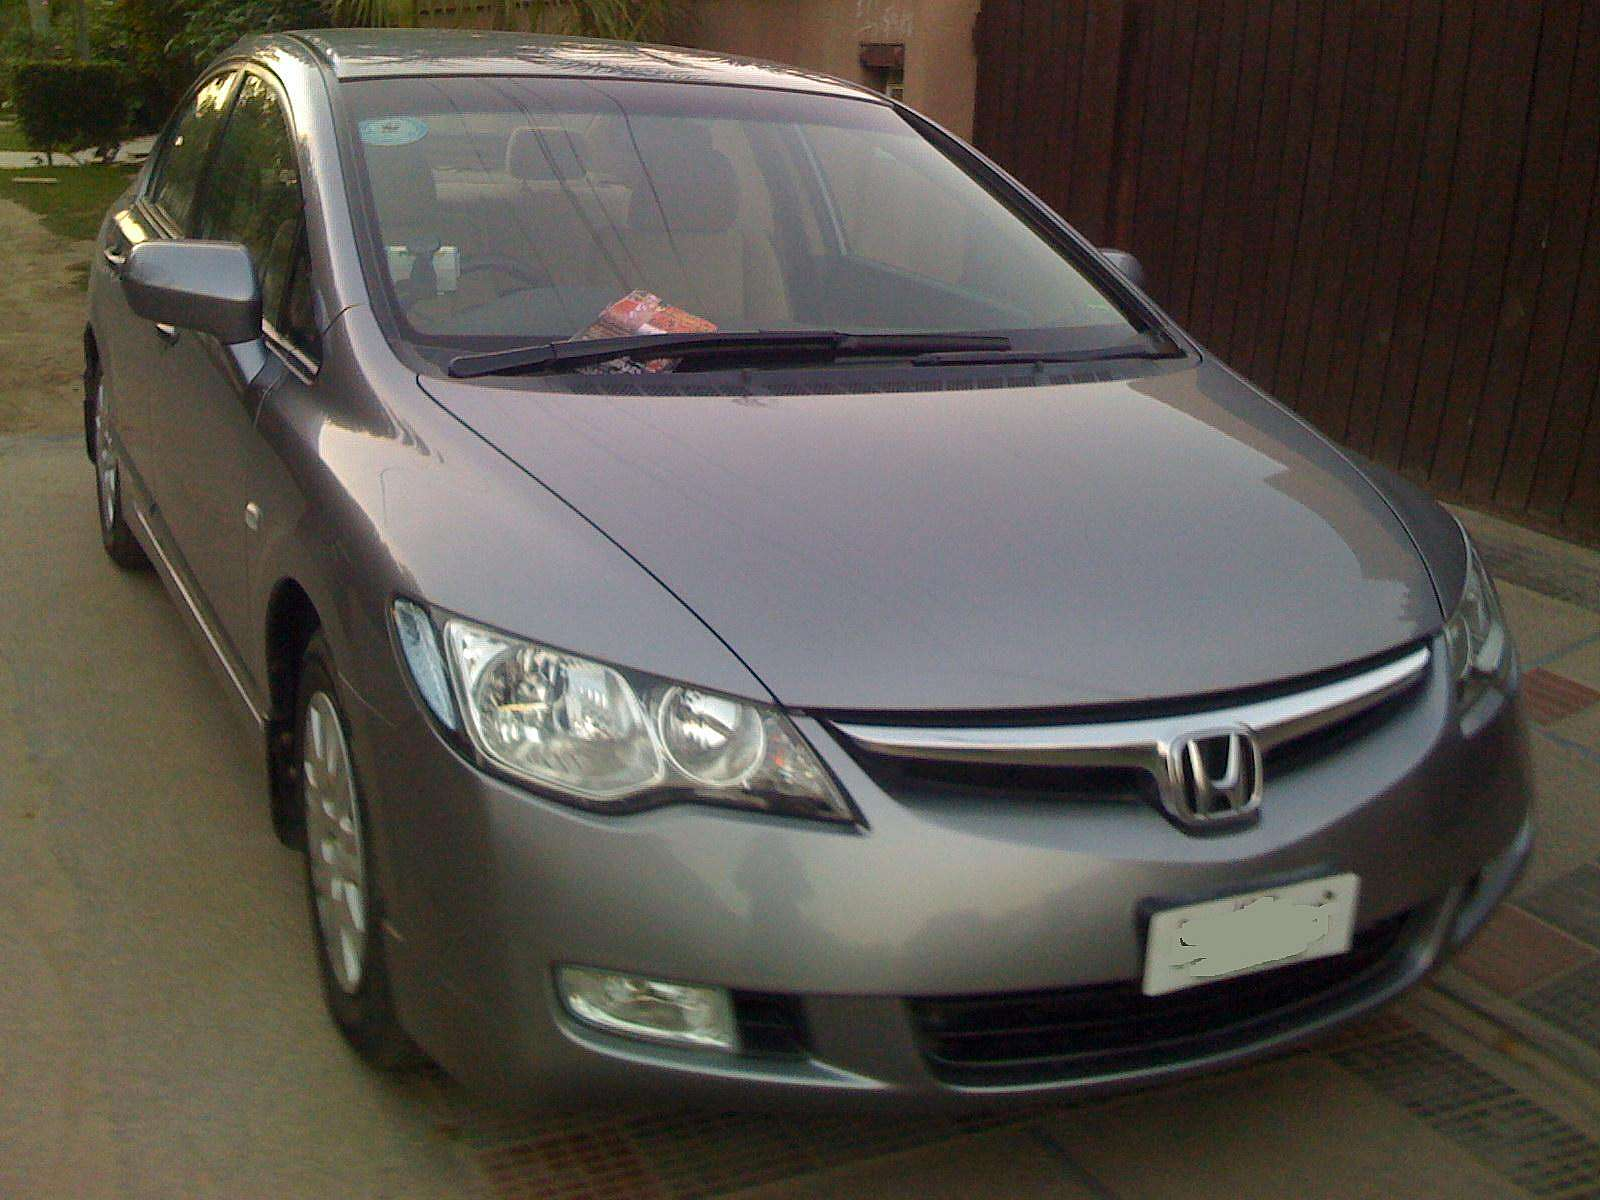 used 2007 honda civic for sale lahore pakistan free classifieds muamat. Black Bedroom Furniture Sets. Home Design Ideas